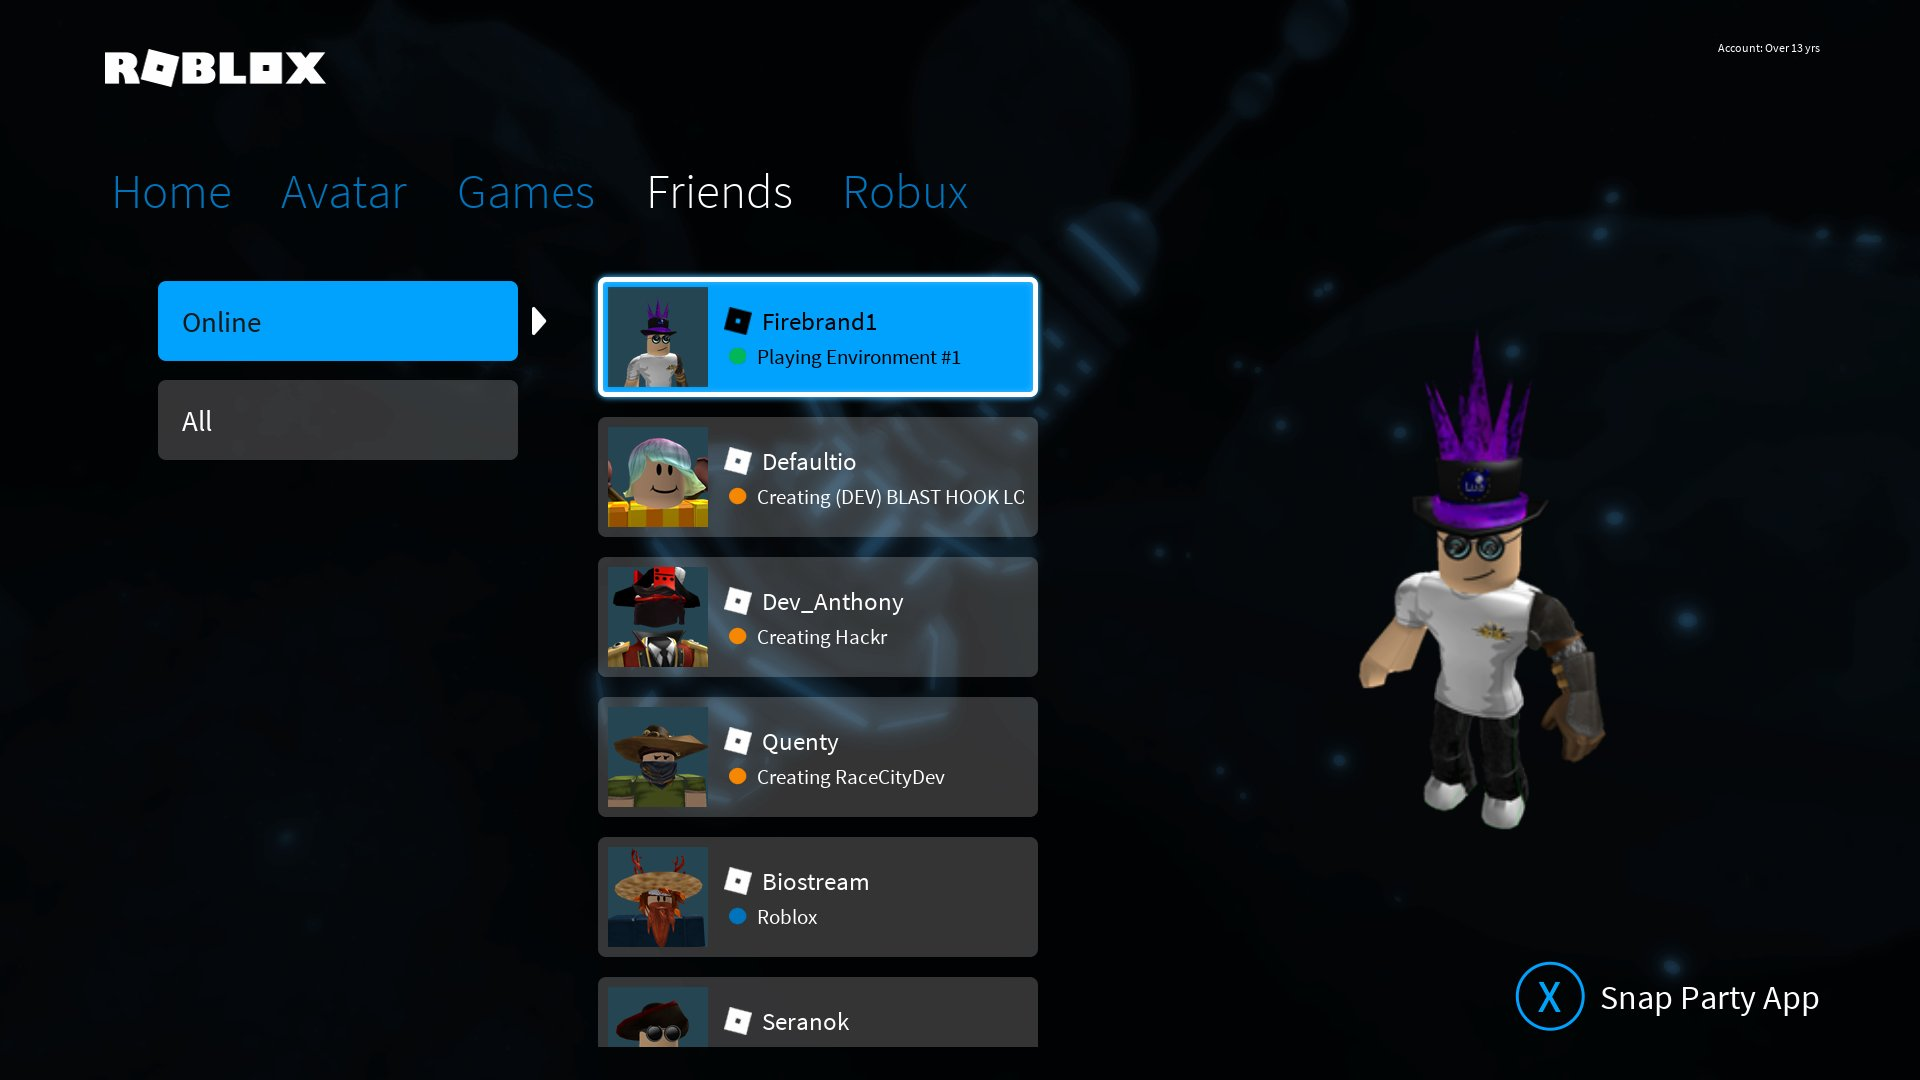 Roblox On Twitter Playing Roblox With Friends On Xbox One Just